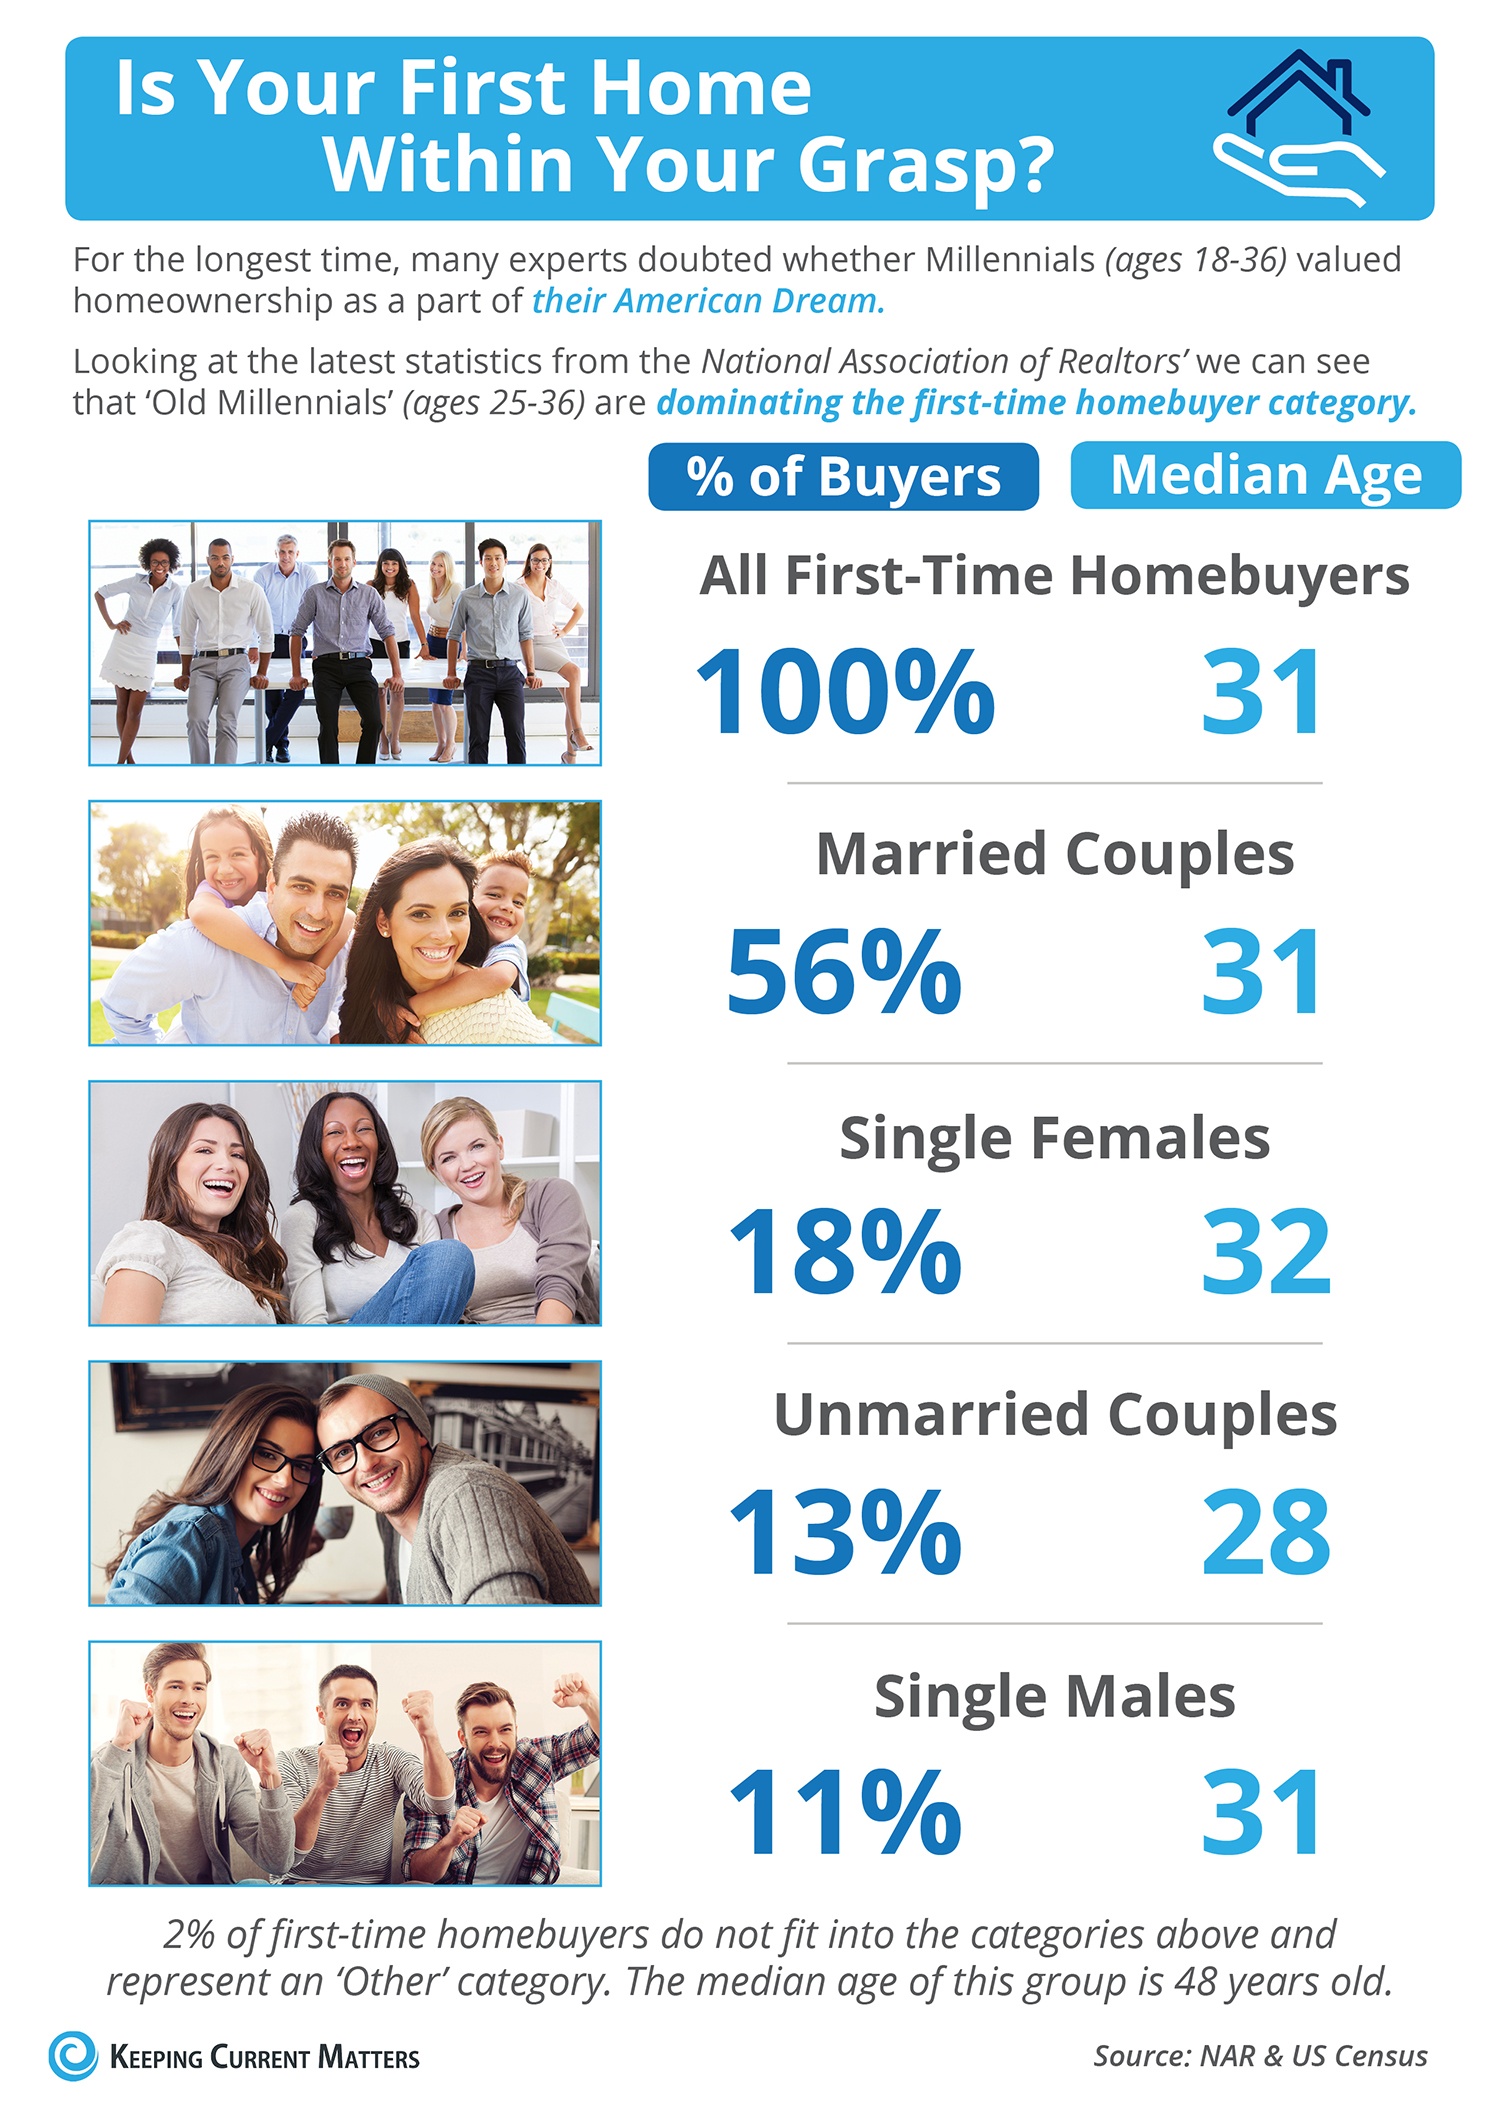 Is Your First Home Within Your Grasp? [INFOGRAPHIC] by The KCM Crew on April 14, 2017 in First Time Home Buyers, For Buyers, Infographics, Millennials, Move-Up Buyers Agents, did you know you can share a personalized version of this post? Learn more!  368 233 27 71 34 3 Is Your First Home Within Your Grasp? [INFOGRAPHIC] | Keeping Current Matters  Some Highlights:  'Millennials' are defined as 18-36 year olds according to the US Census Bureau. According to NAR's latest Profile of Home Buyers & Sellers, the median age of all first-time home buyers is 31 years old. More and more 'Old Millennials' (25-36 year olds) are realizing that homeownership is within their reach now!